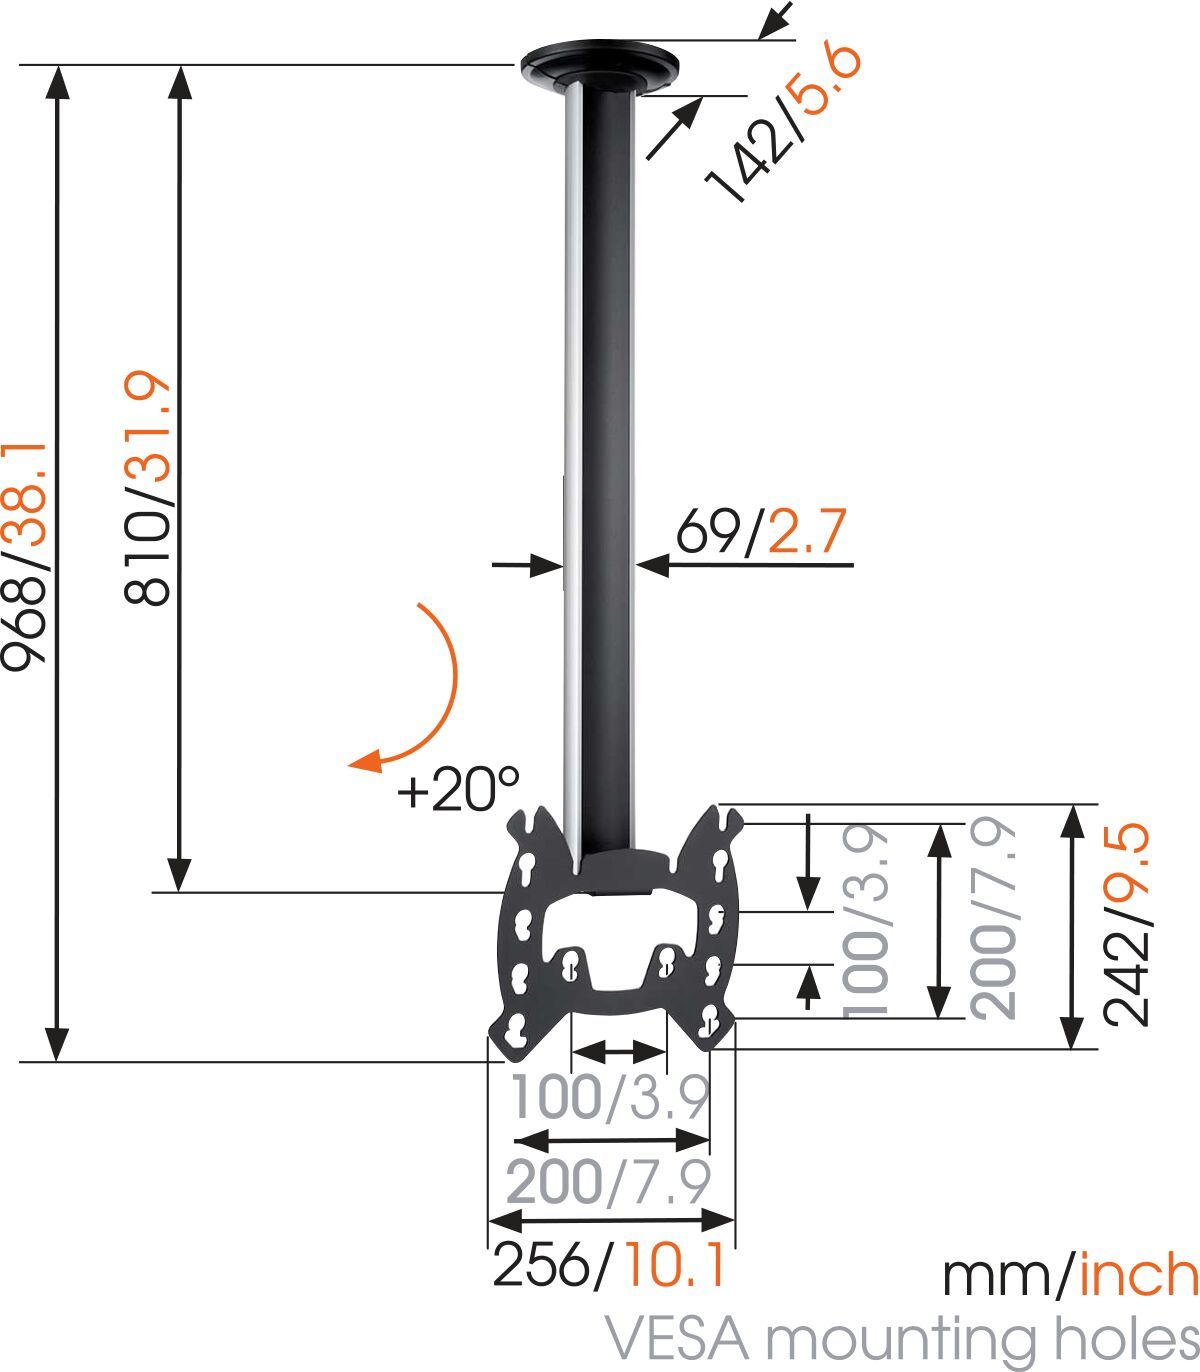 Vogel's EFC 6215 TV Ceiling Mount - Dimensions